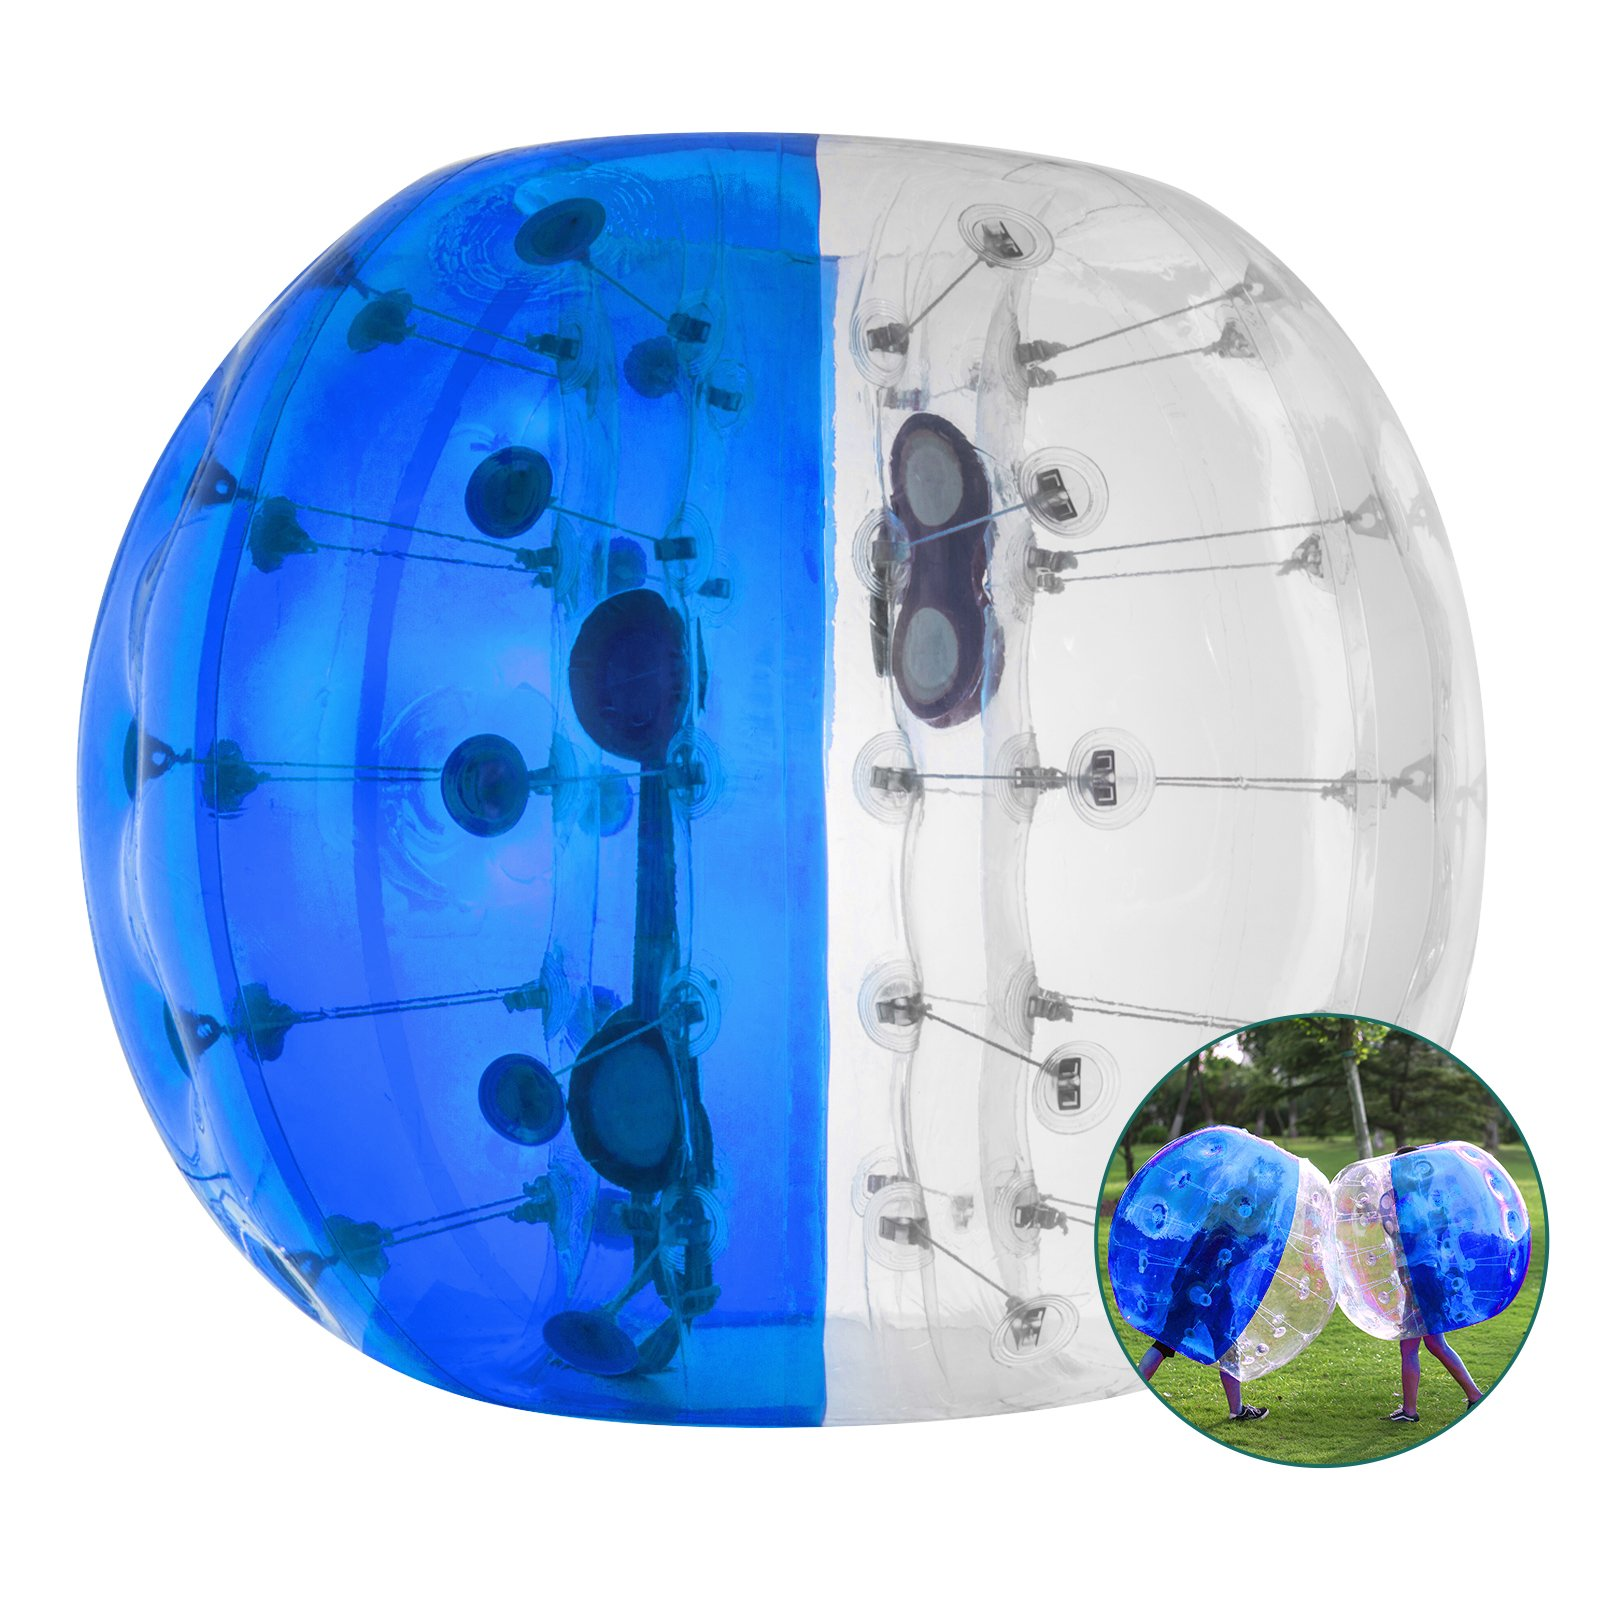 Happybuy Inflatable Bumper Ball 4ft Diameter Bubble Soccer Ball Blow Up Toy in 5 Min Inflatable Bumper Bubble Balls for Adults or Child